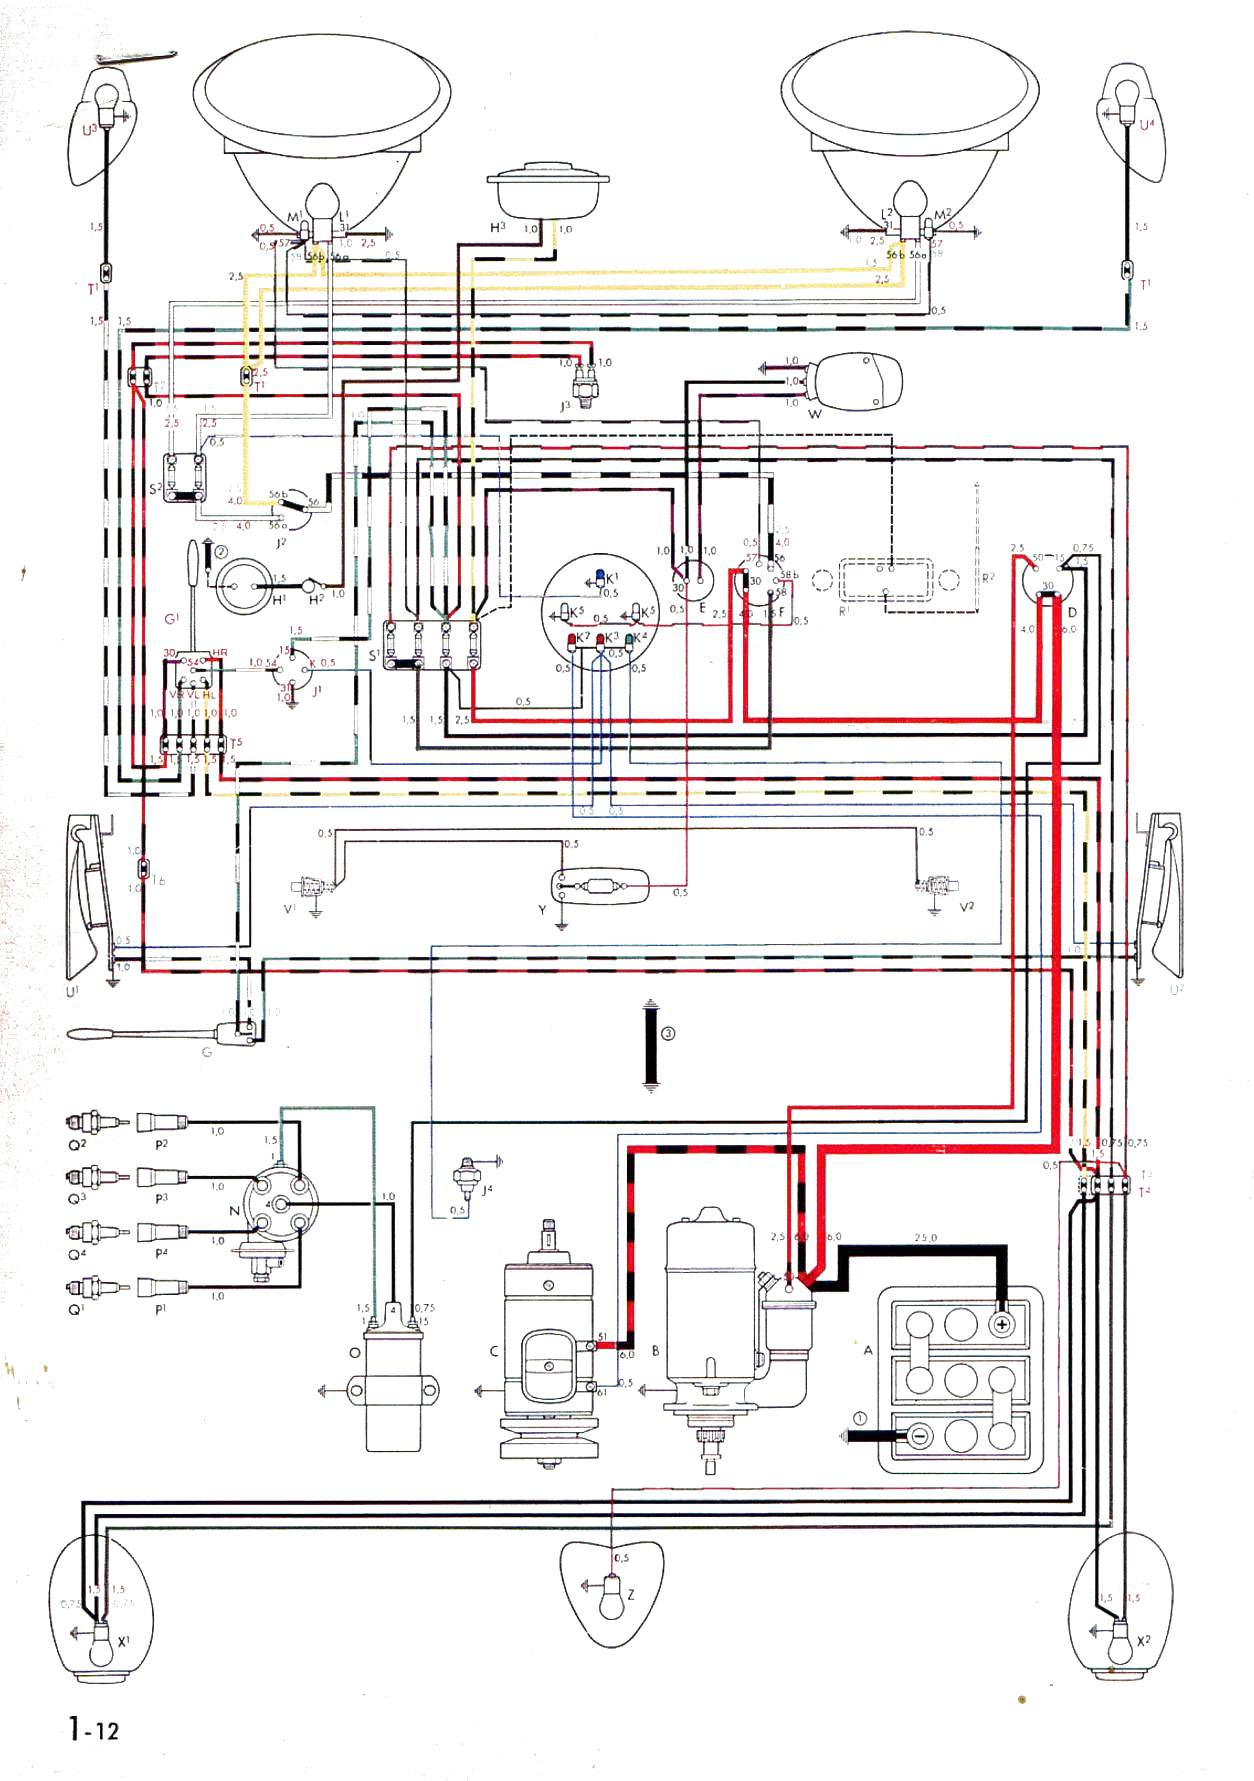 bug 55 57 vintagebus com vw bus (and other) wiring diagrams vw beetle wiring harness routing at edmiracle.co